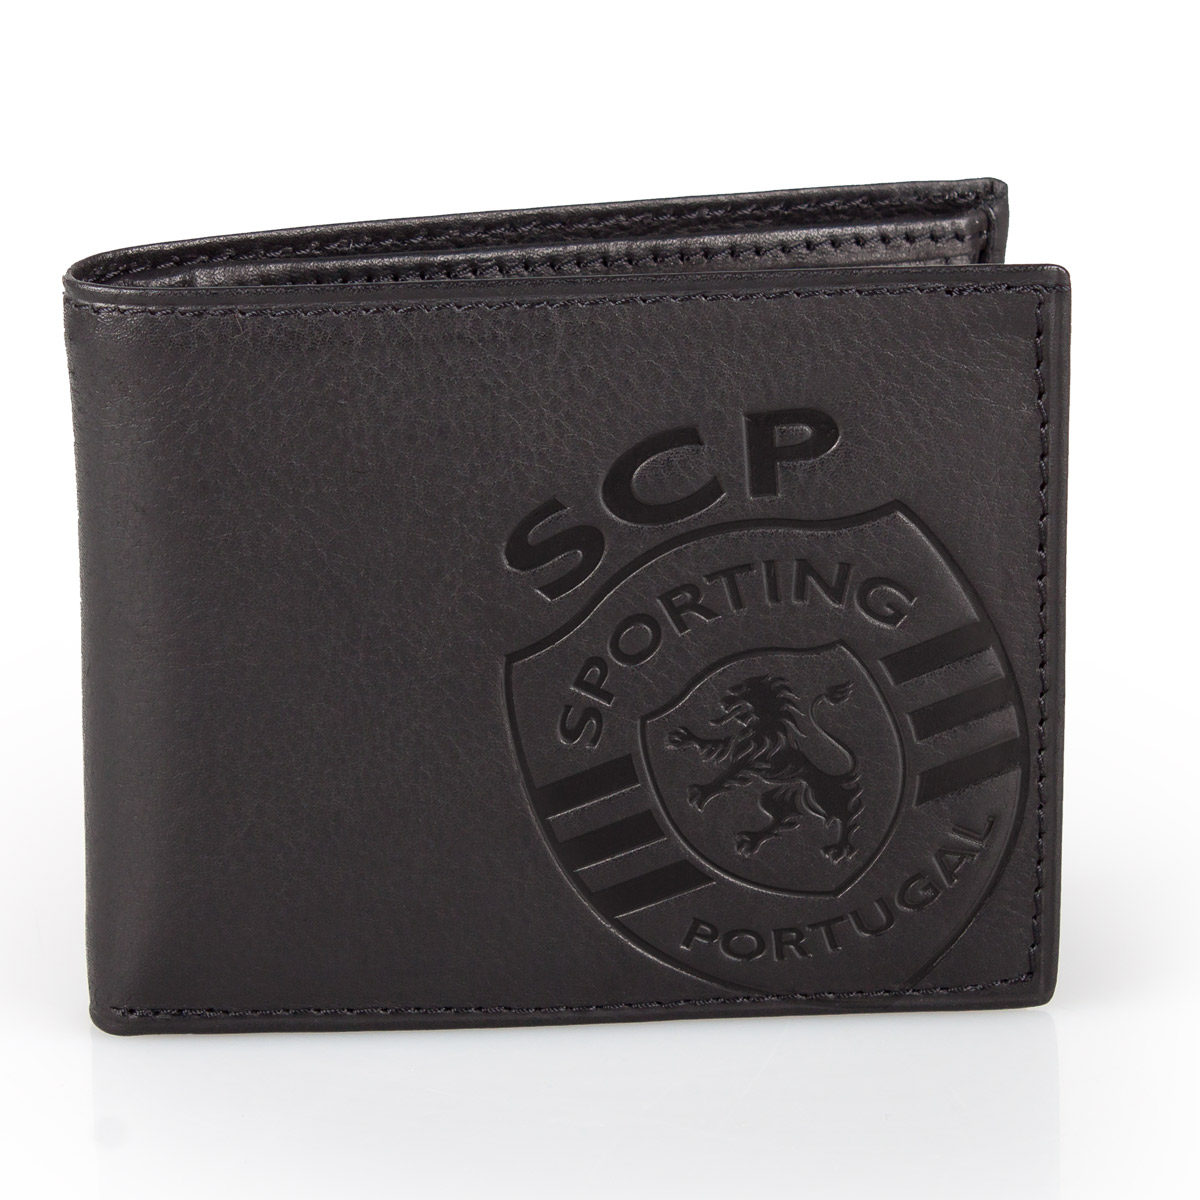 Leather Wallet SPORTING C.P. Black 11.5cm – image 2